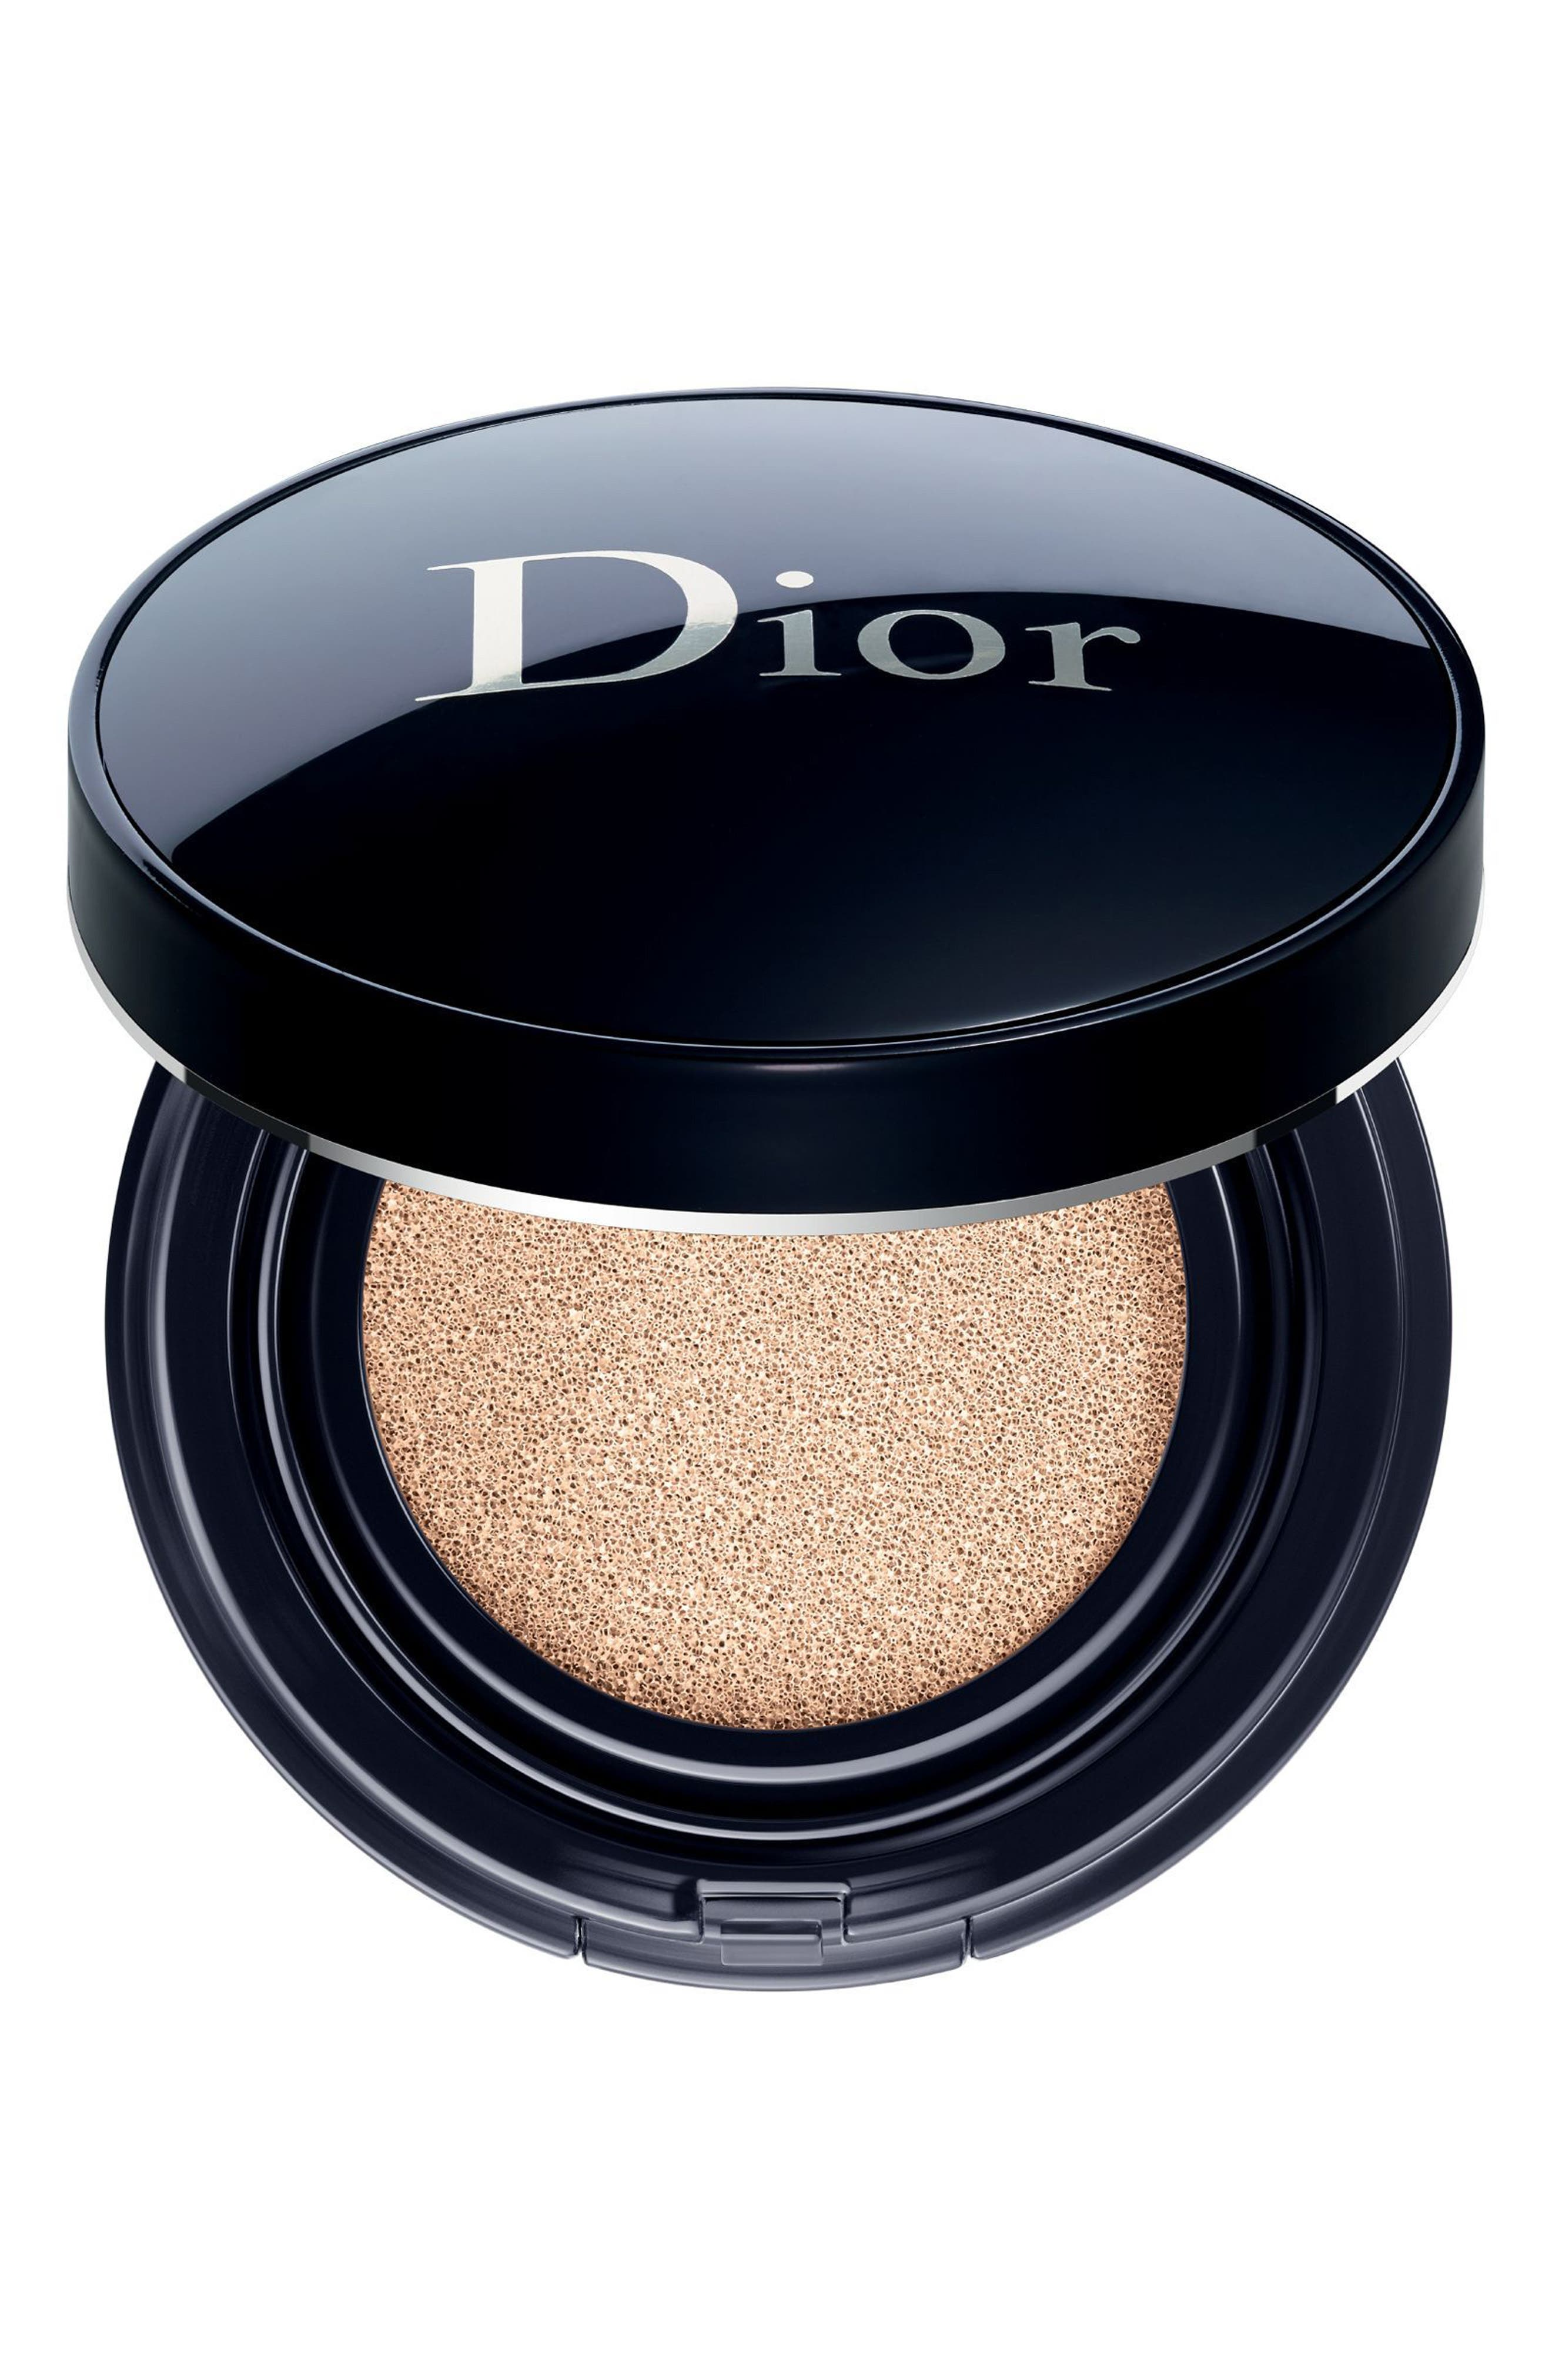 Dior Diorskin Forever Perfect Cushion Foundation Broad Spectrum SPF 35